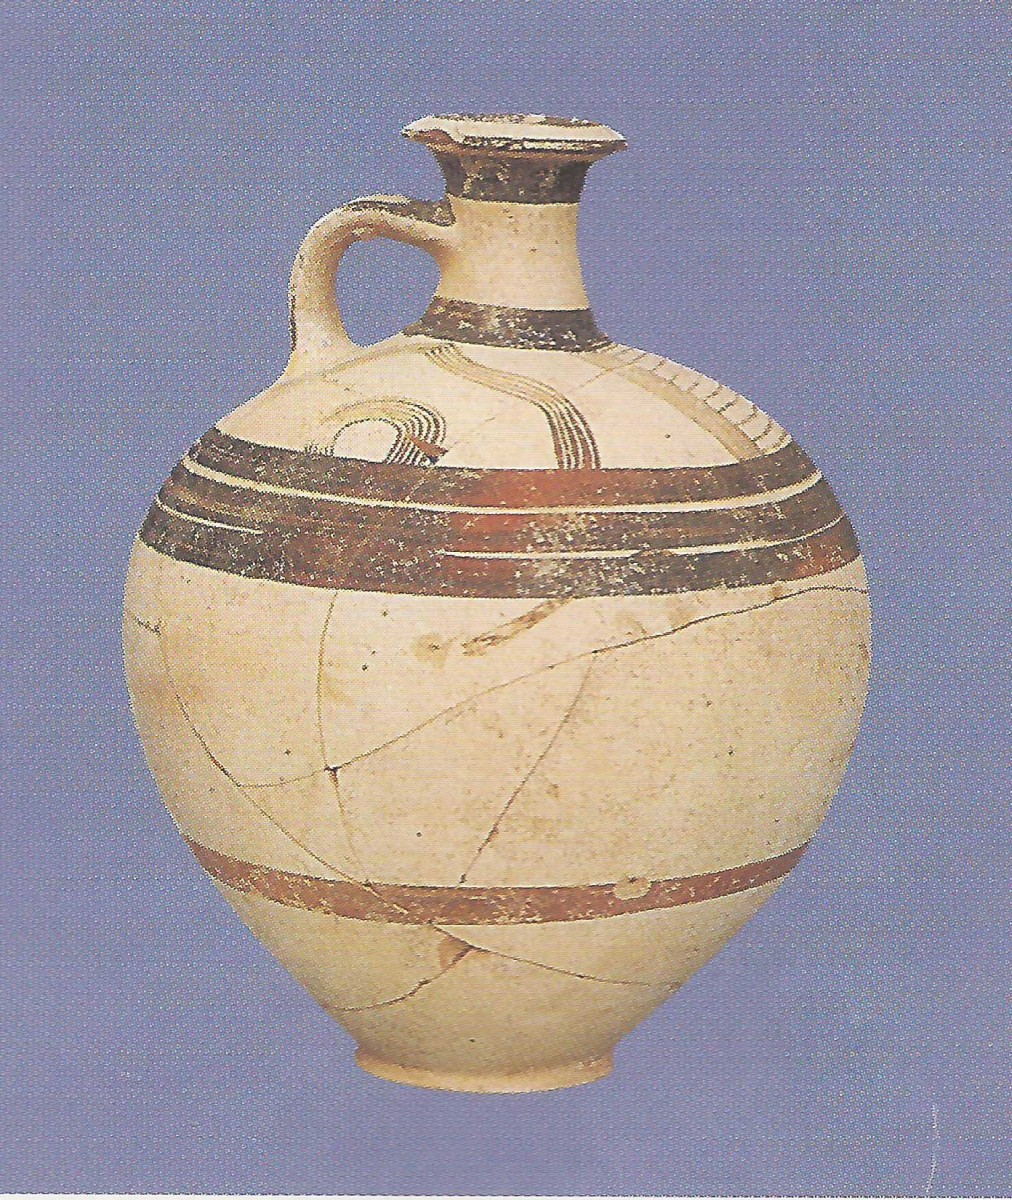 Clay vessel found in the remains of the building complex.